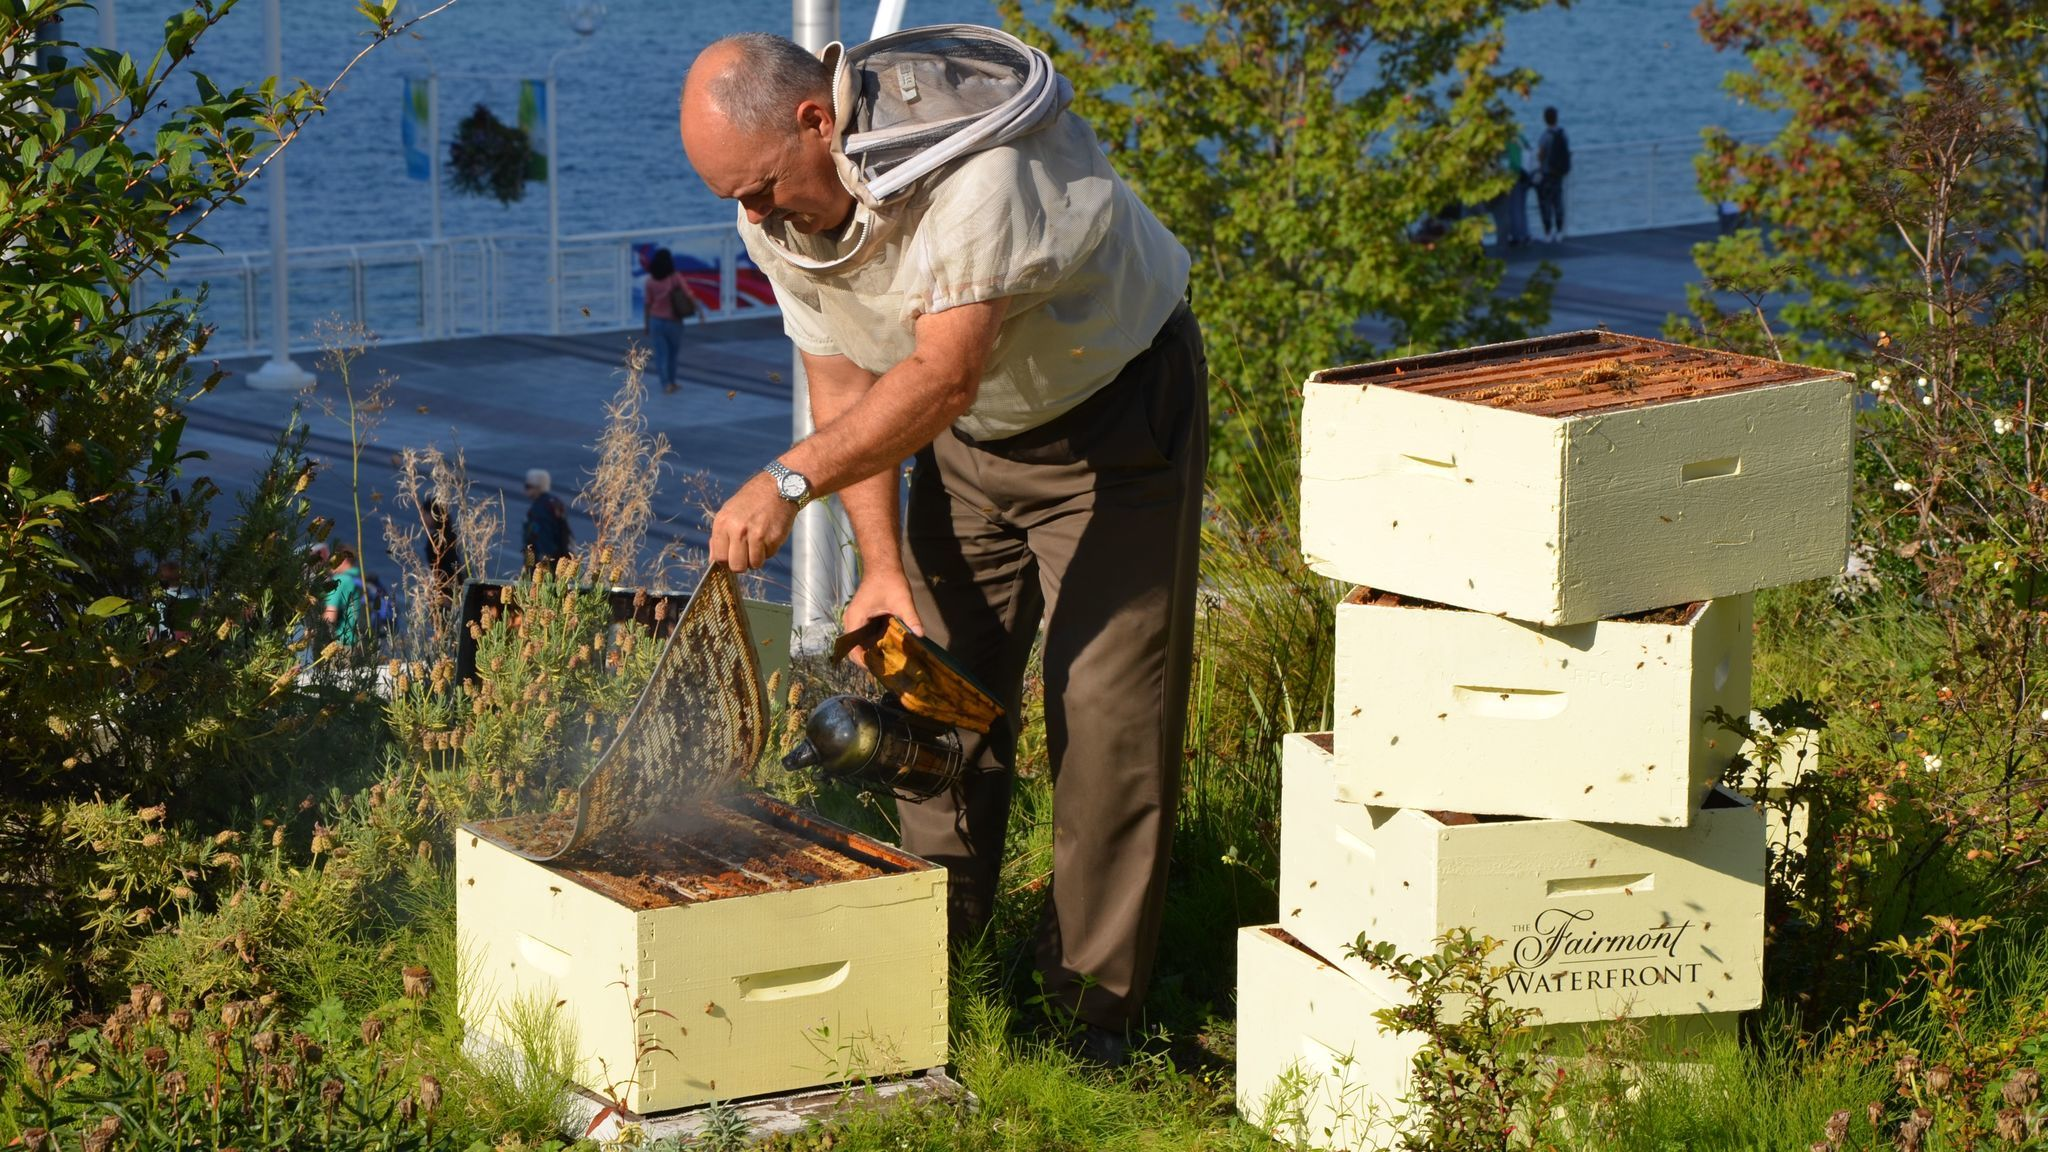 A beekeeper attends to the apiary at the Fairmont Waterfront in Vancouver, British Columbia. Fairmont keeps bees at over 20 properties around the world.